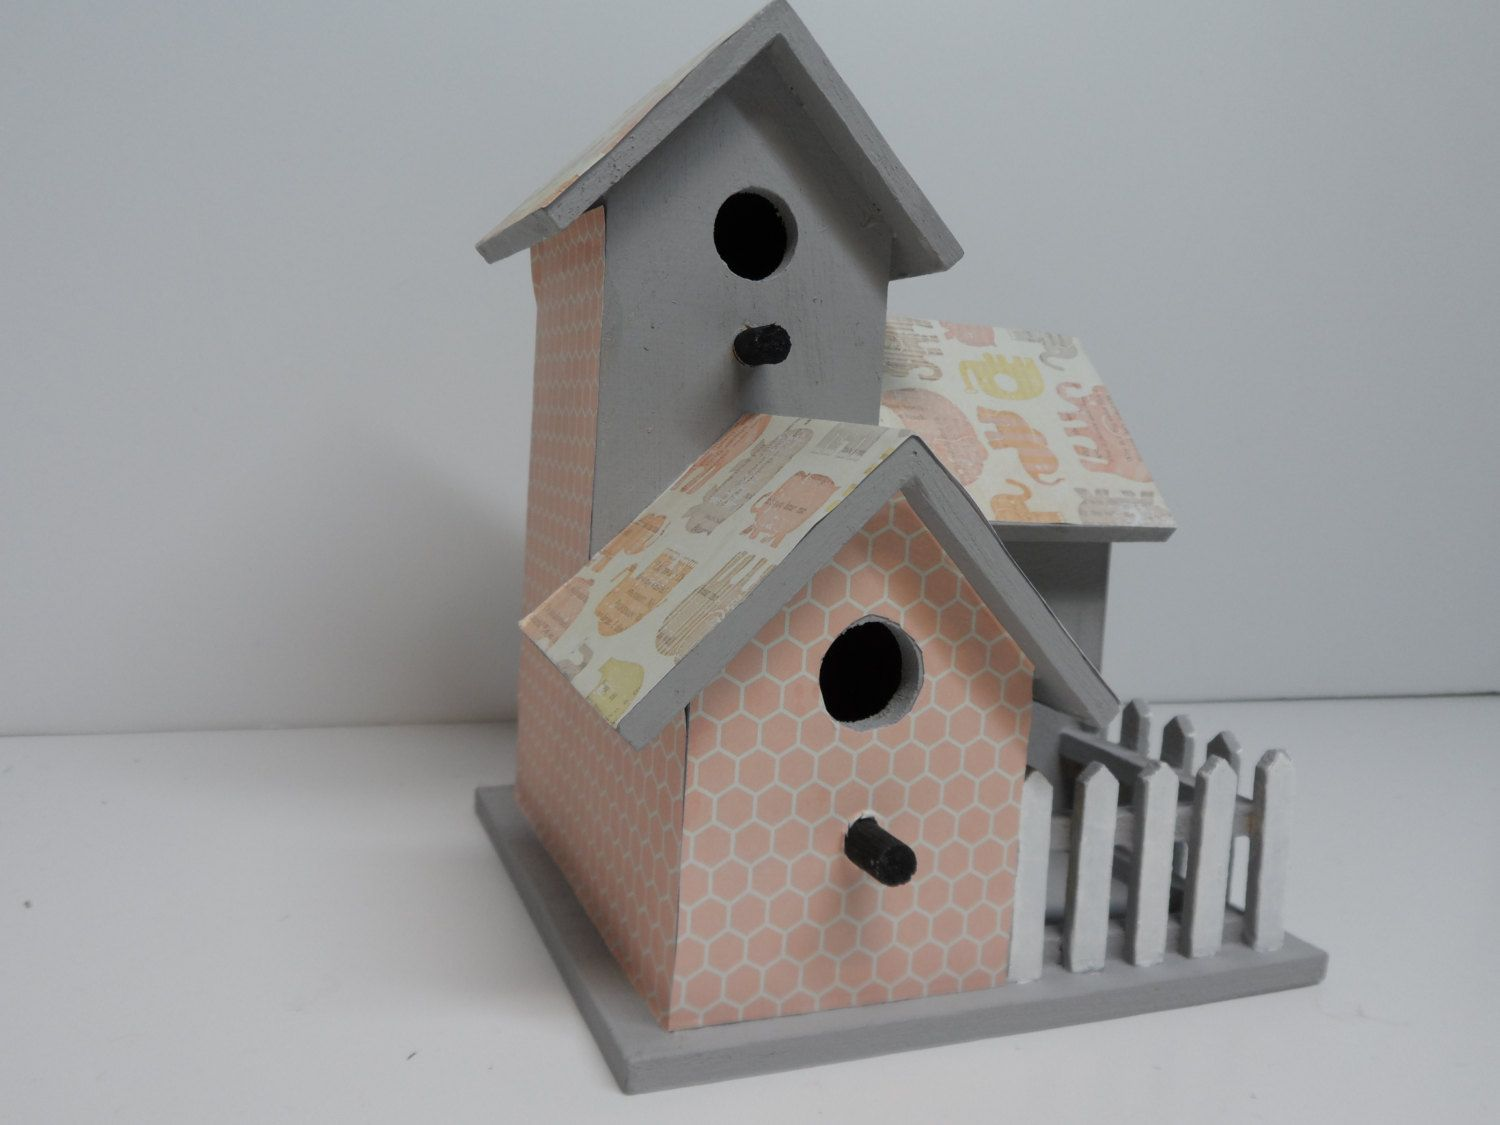 Birdhouse, Decorated Birdhouse with fence, Decorative Bird house, Gift item, Collectable Bird